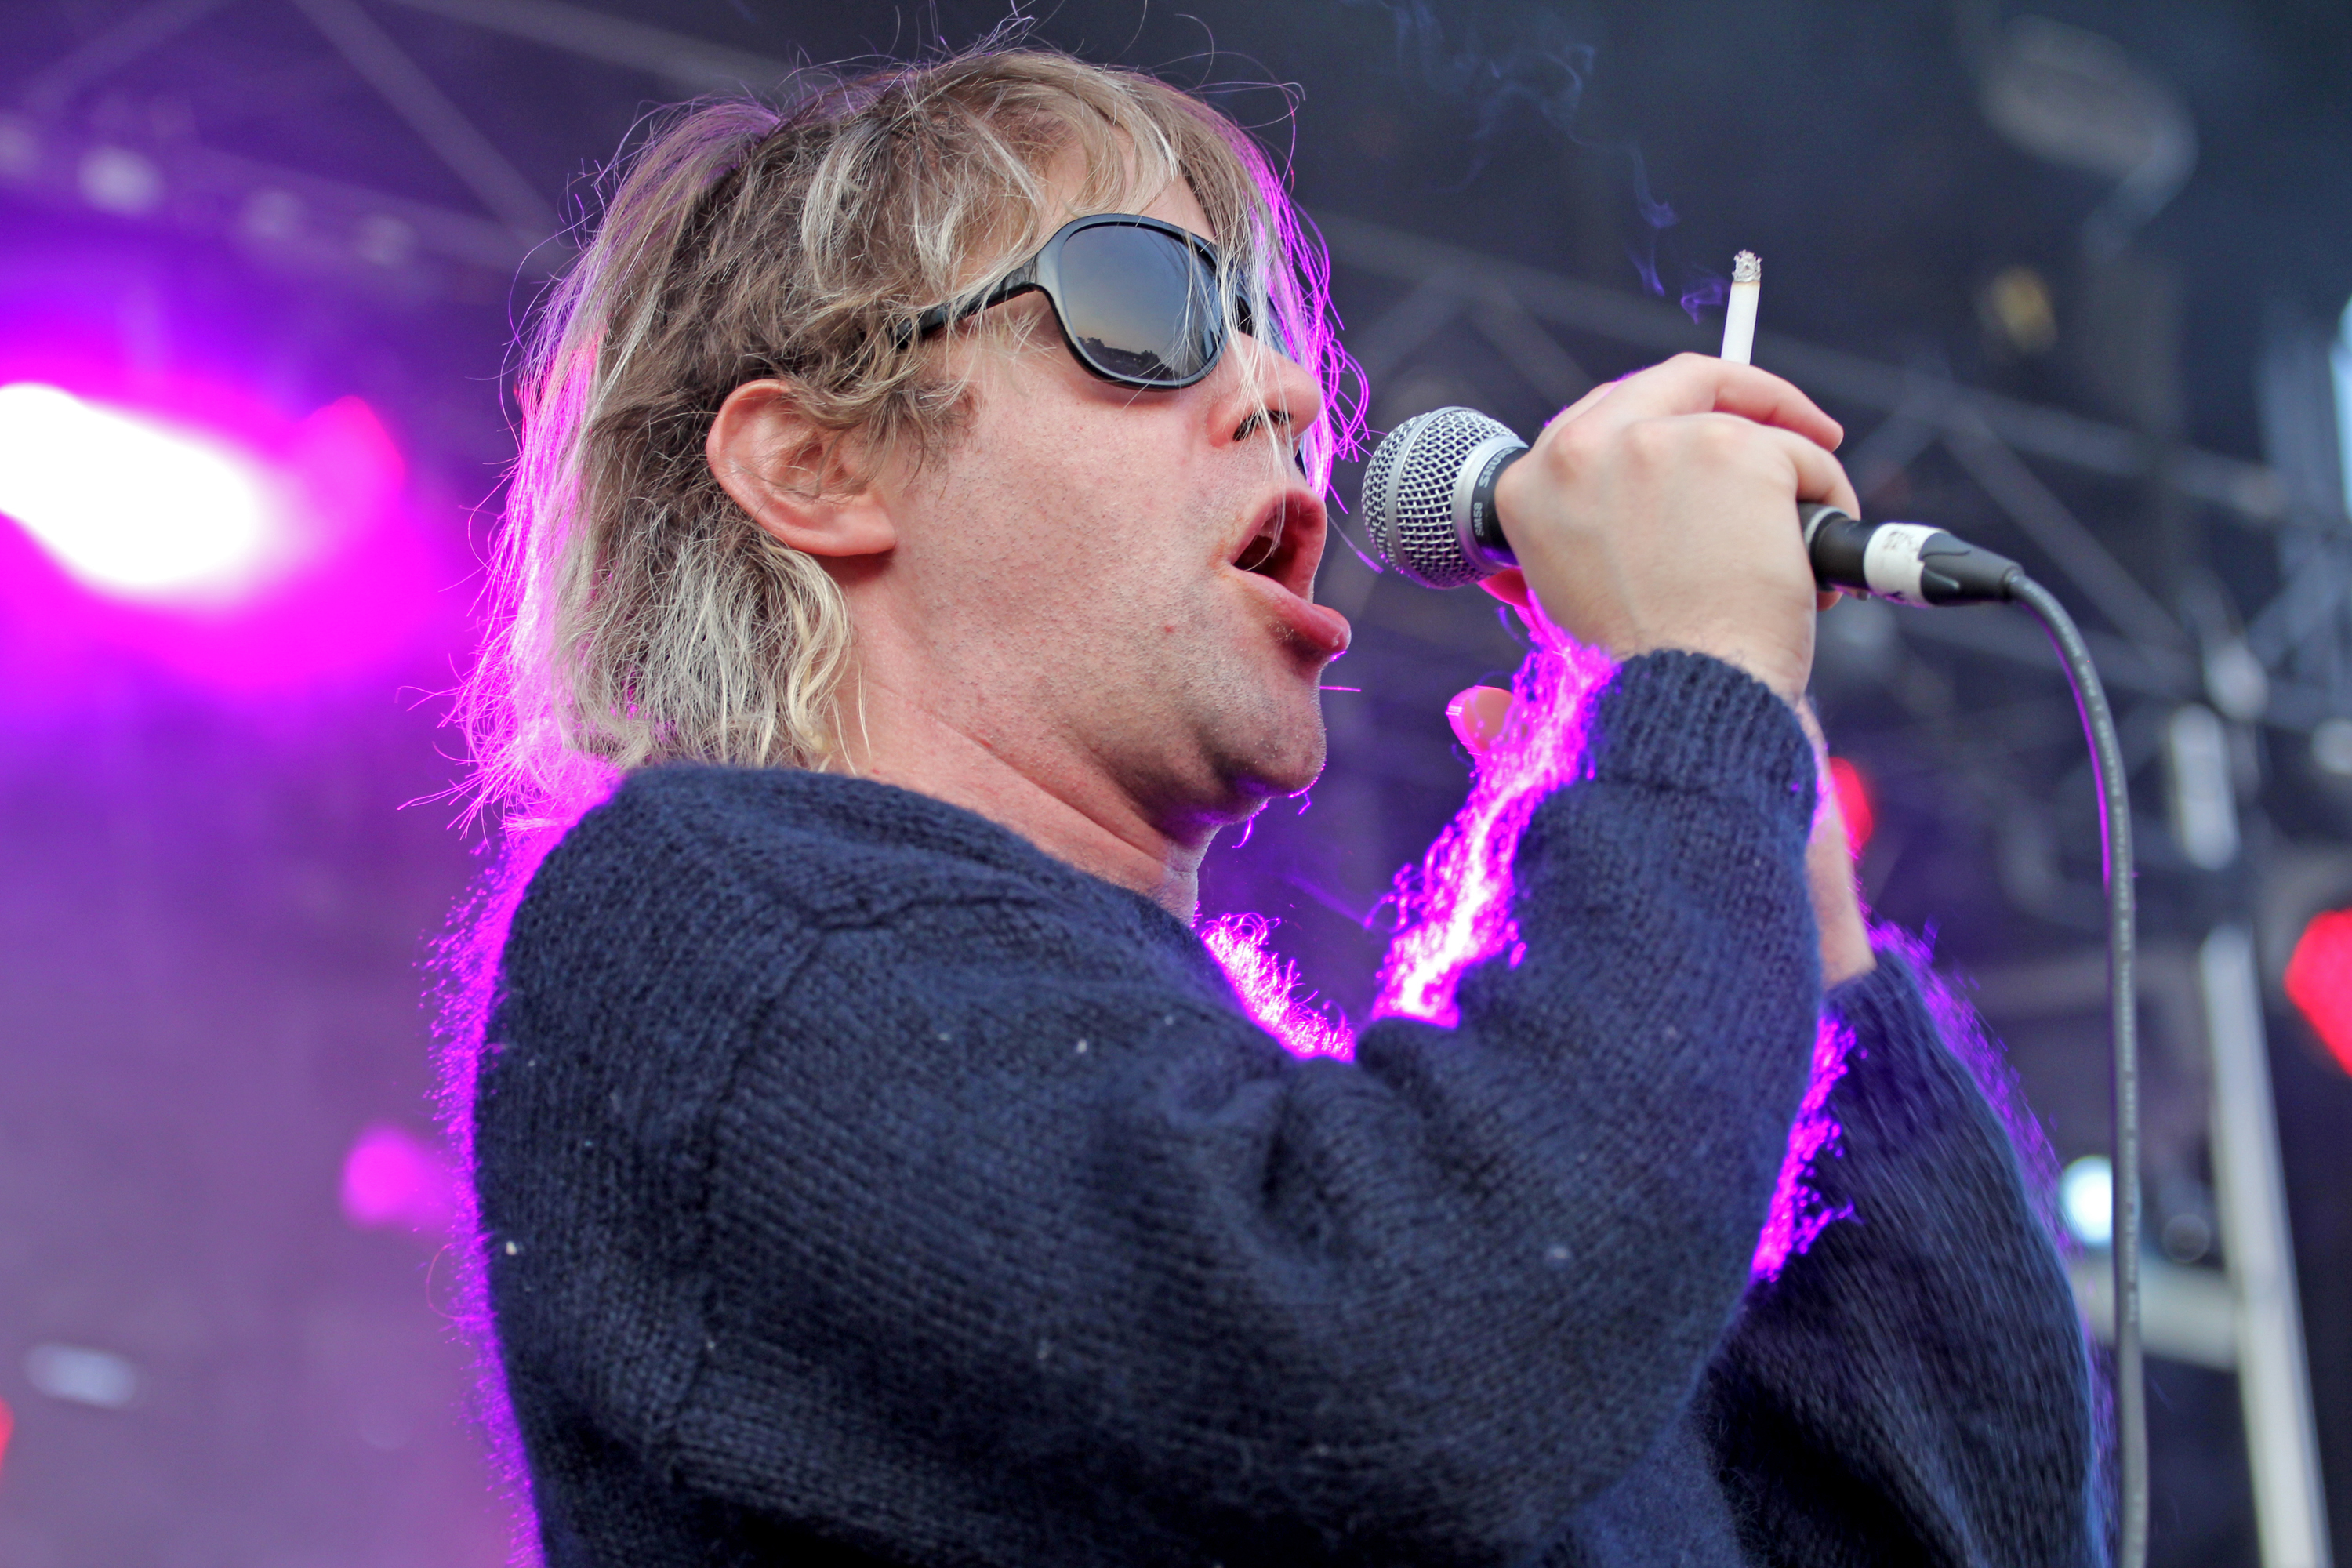 Recap of the Time Festival 2015 in Toronto, On, some of the bands preforming included Mac DeMarco, Die Antwoord, Ariel Pink,